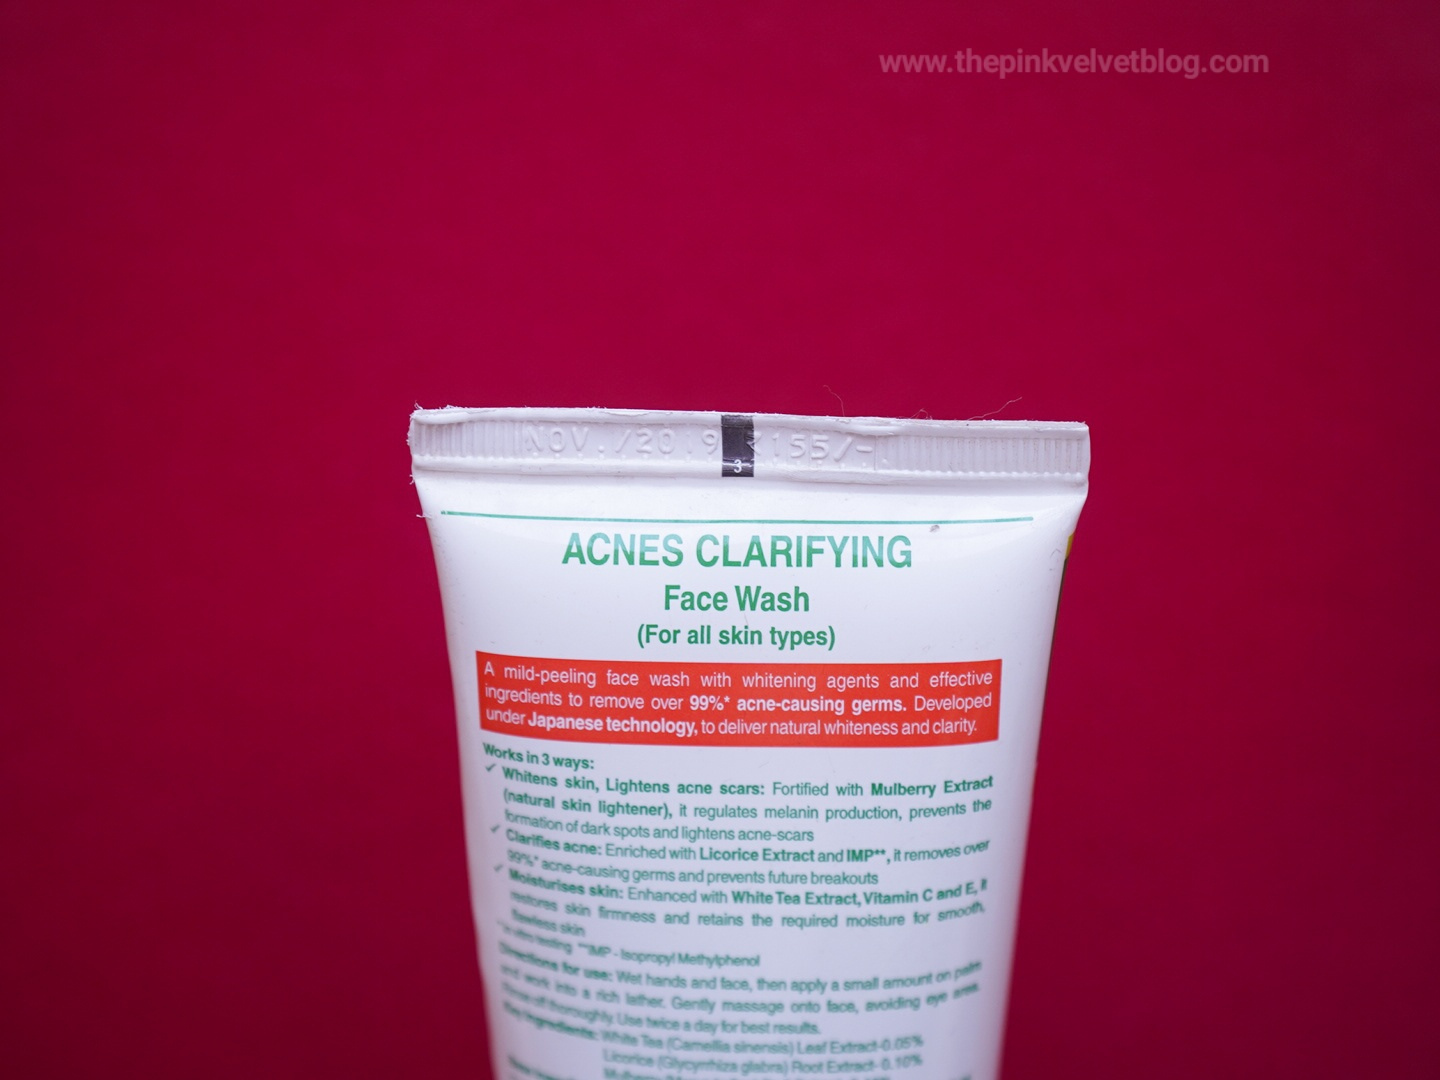 ACNES Clarifying Face Wash Review